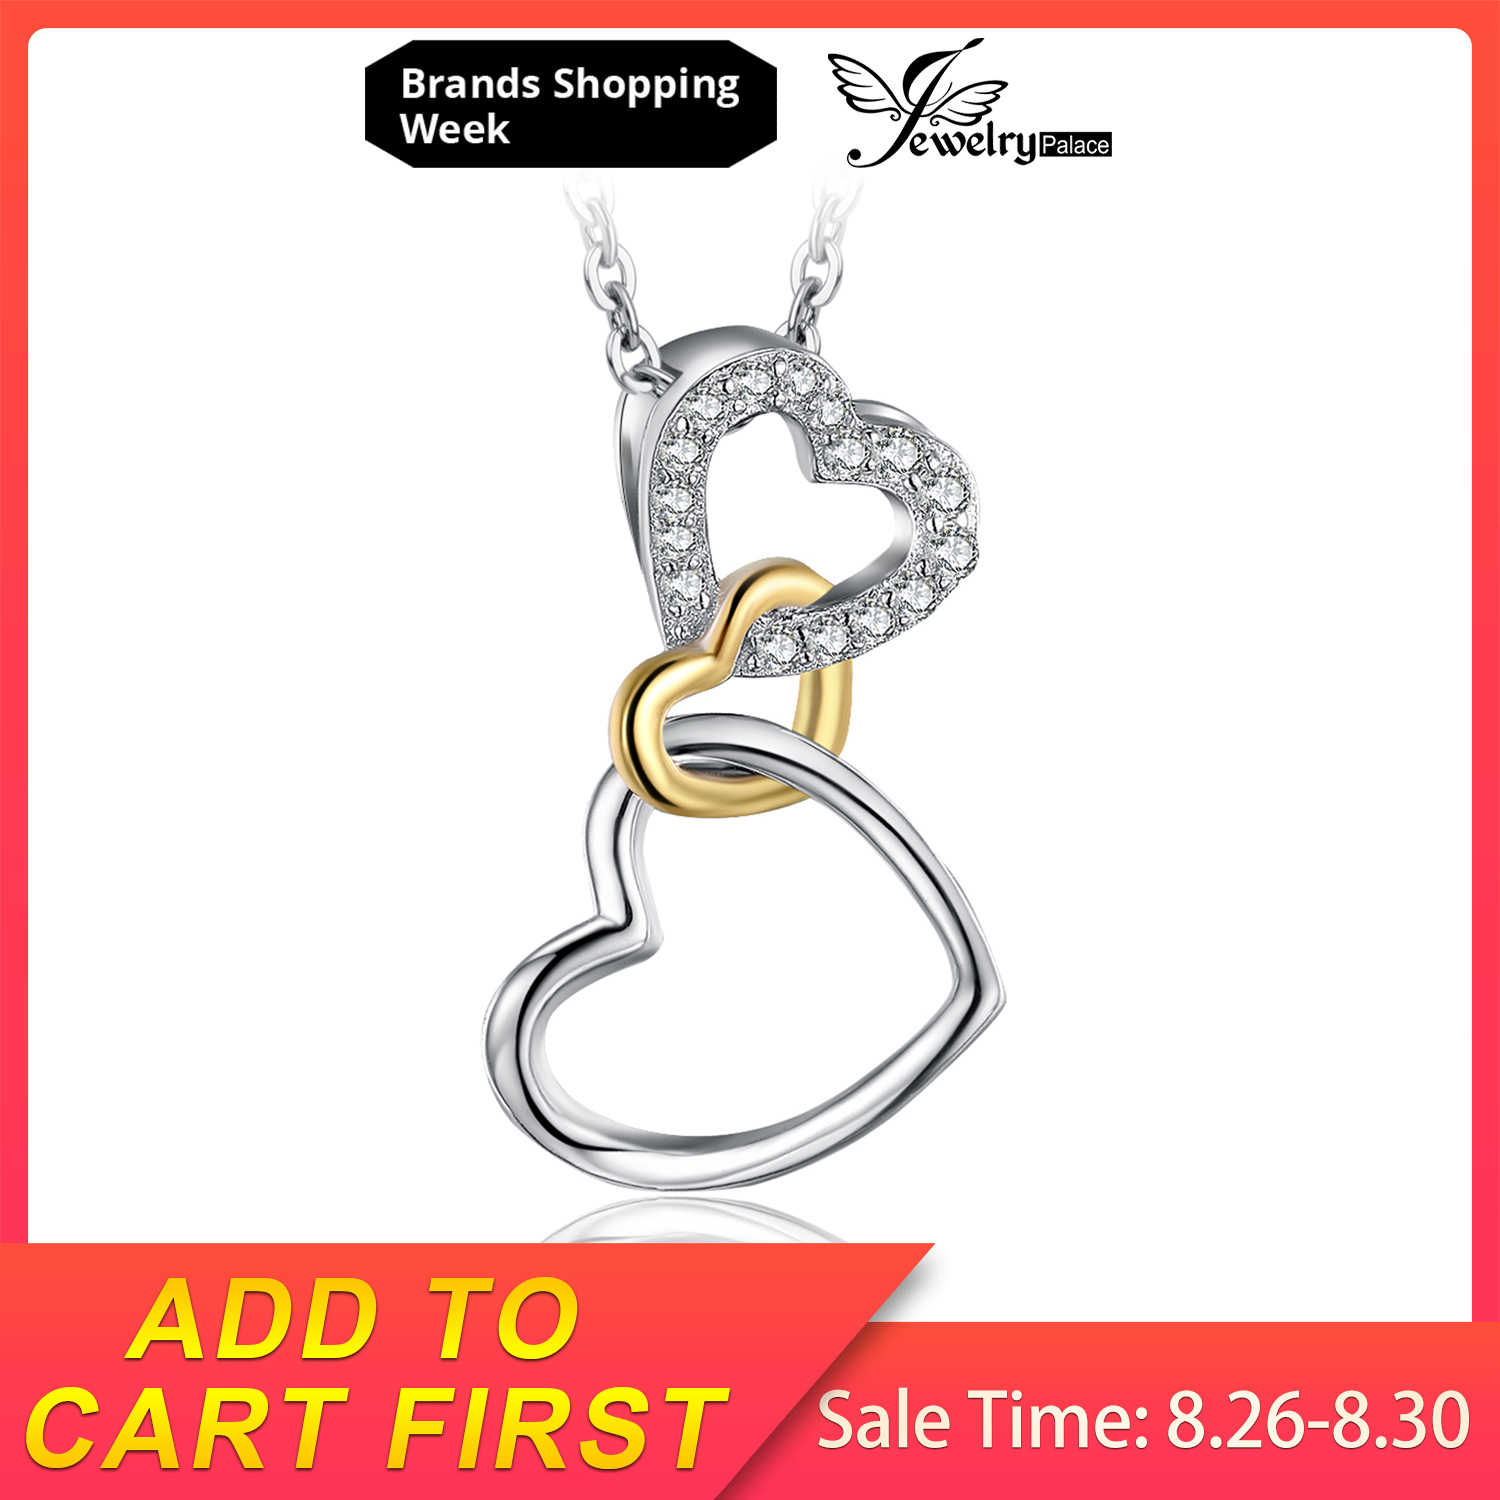 JewelryPalace 925 Sterling Silver Infinity Love Triple Intertwined หัวใจ Pave Cubic Zirconia จี้ไม่รวมโซ่